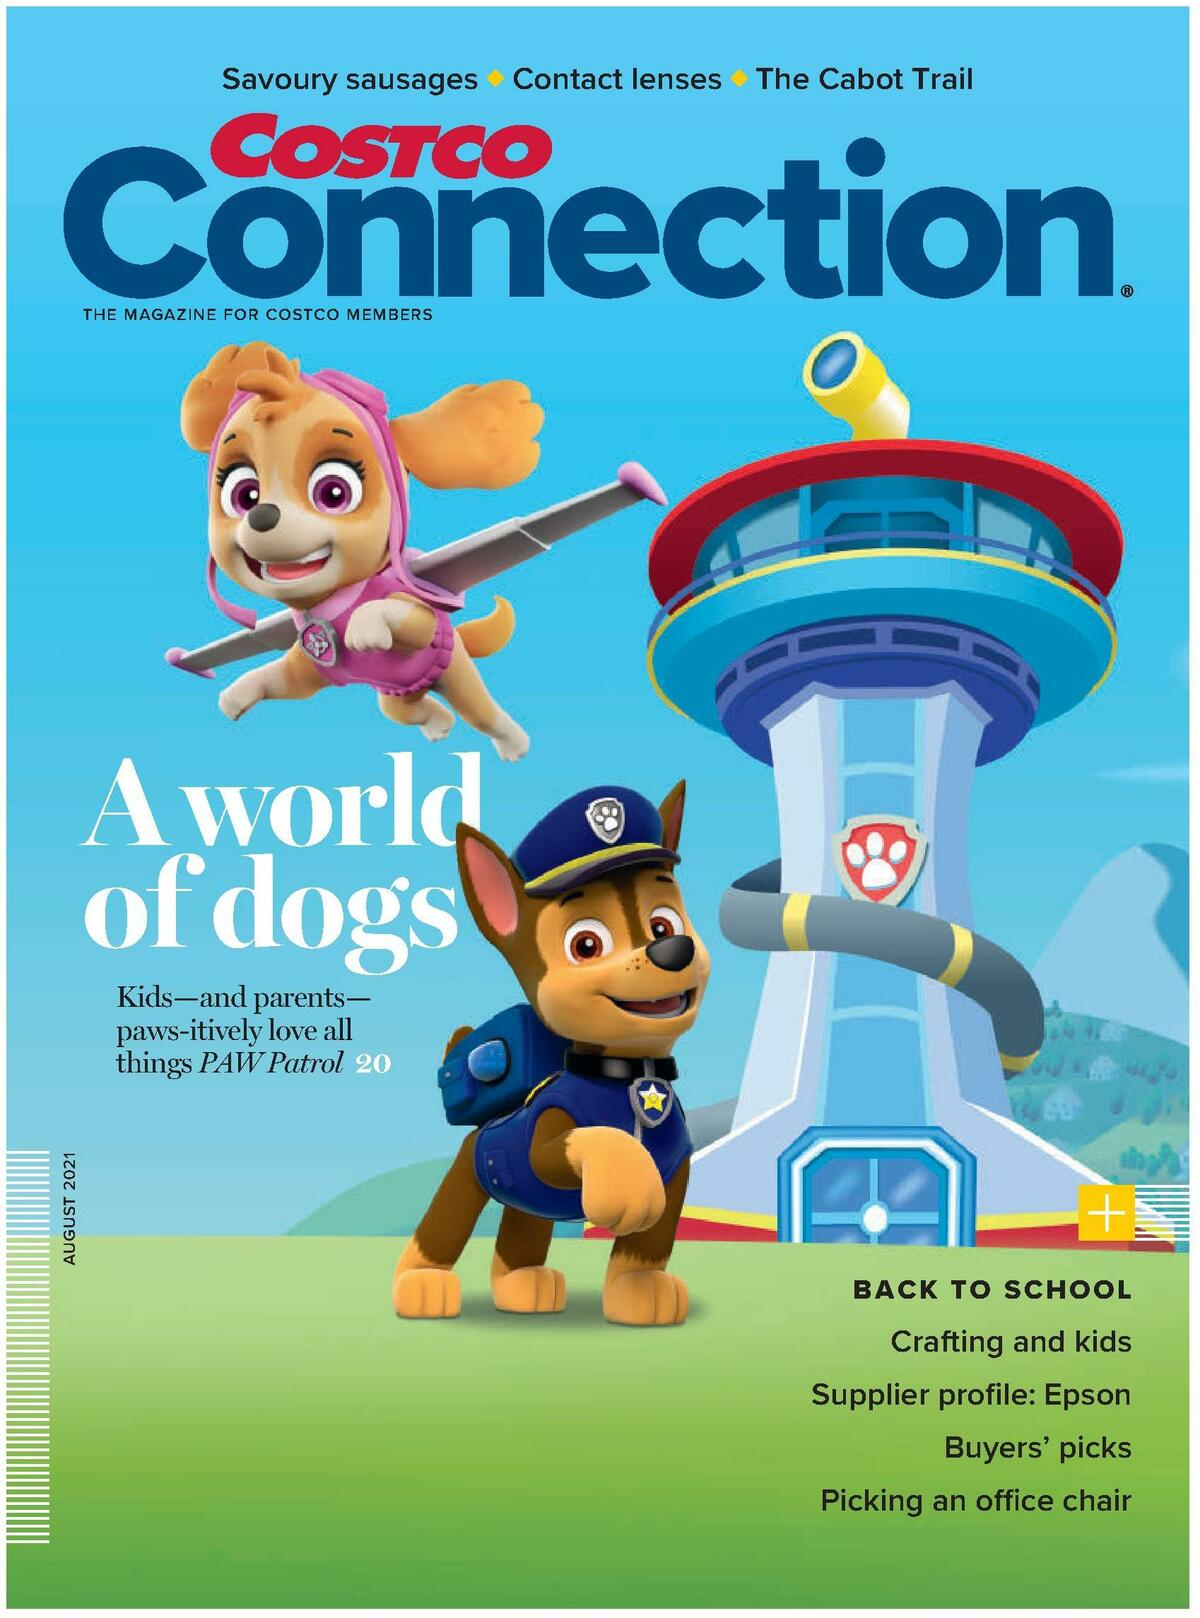 Costco Connection August Flyer from August 1